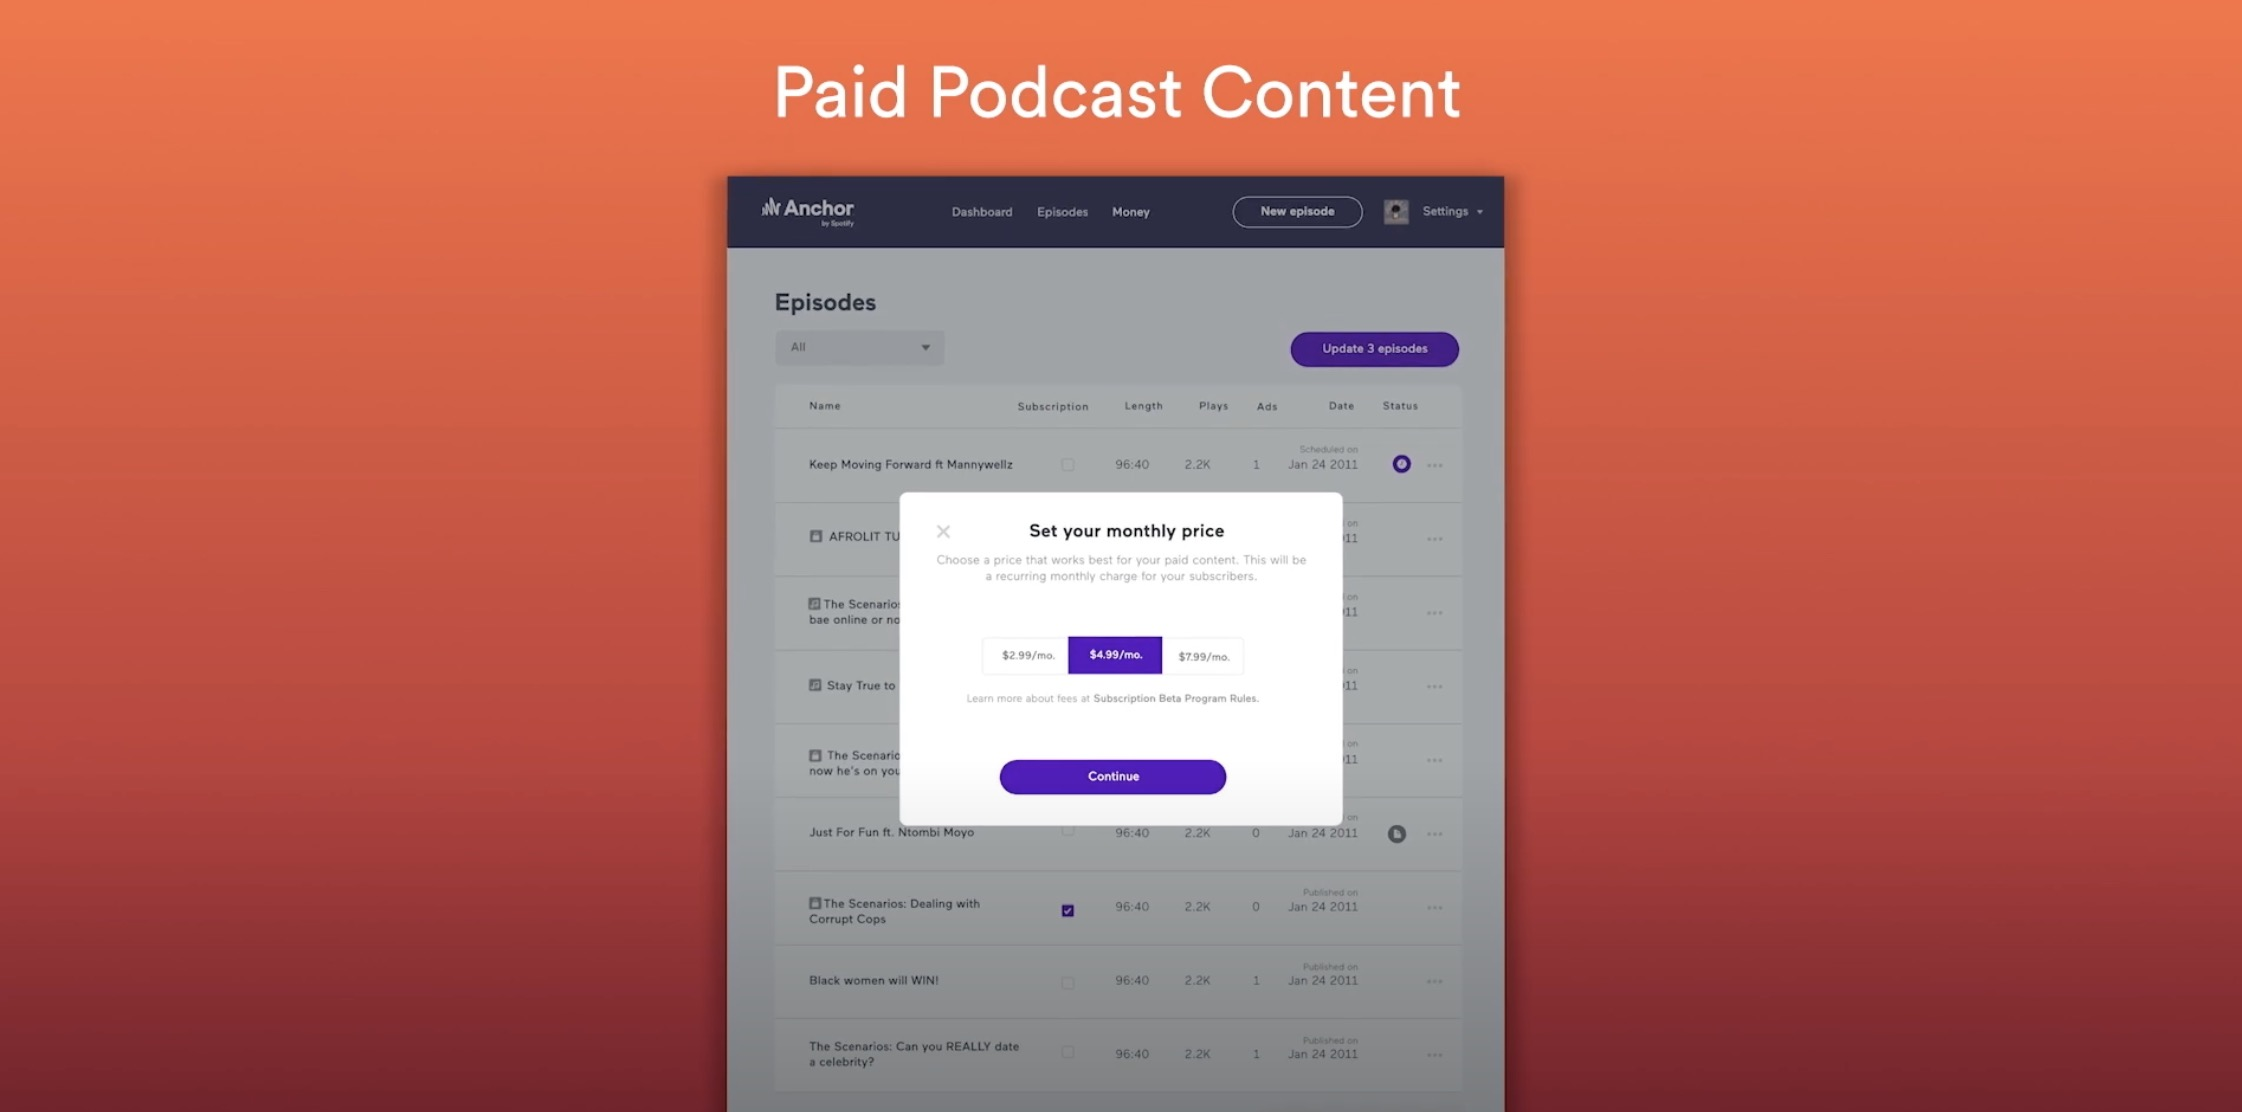 Spotify launches paid podcasts through new Anchor feature